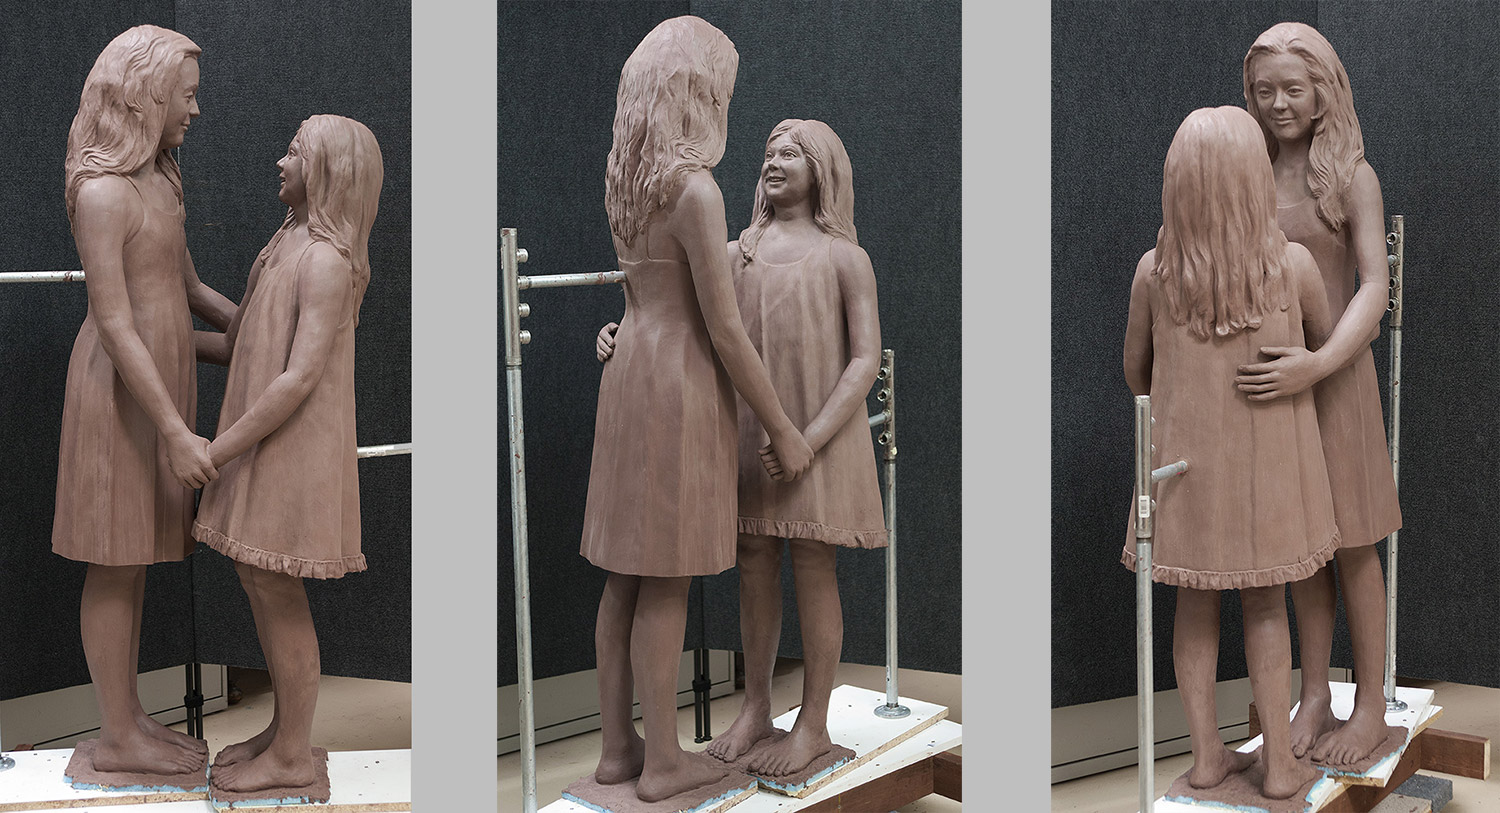 The clay artwork from 3 different angles.